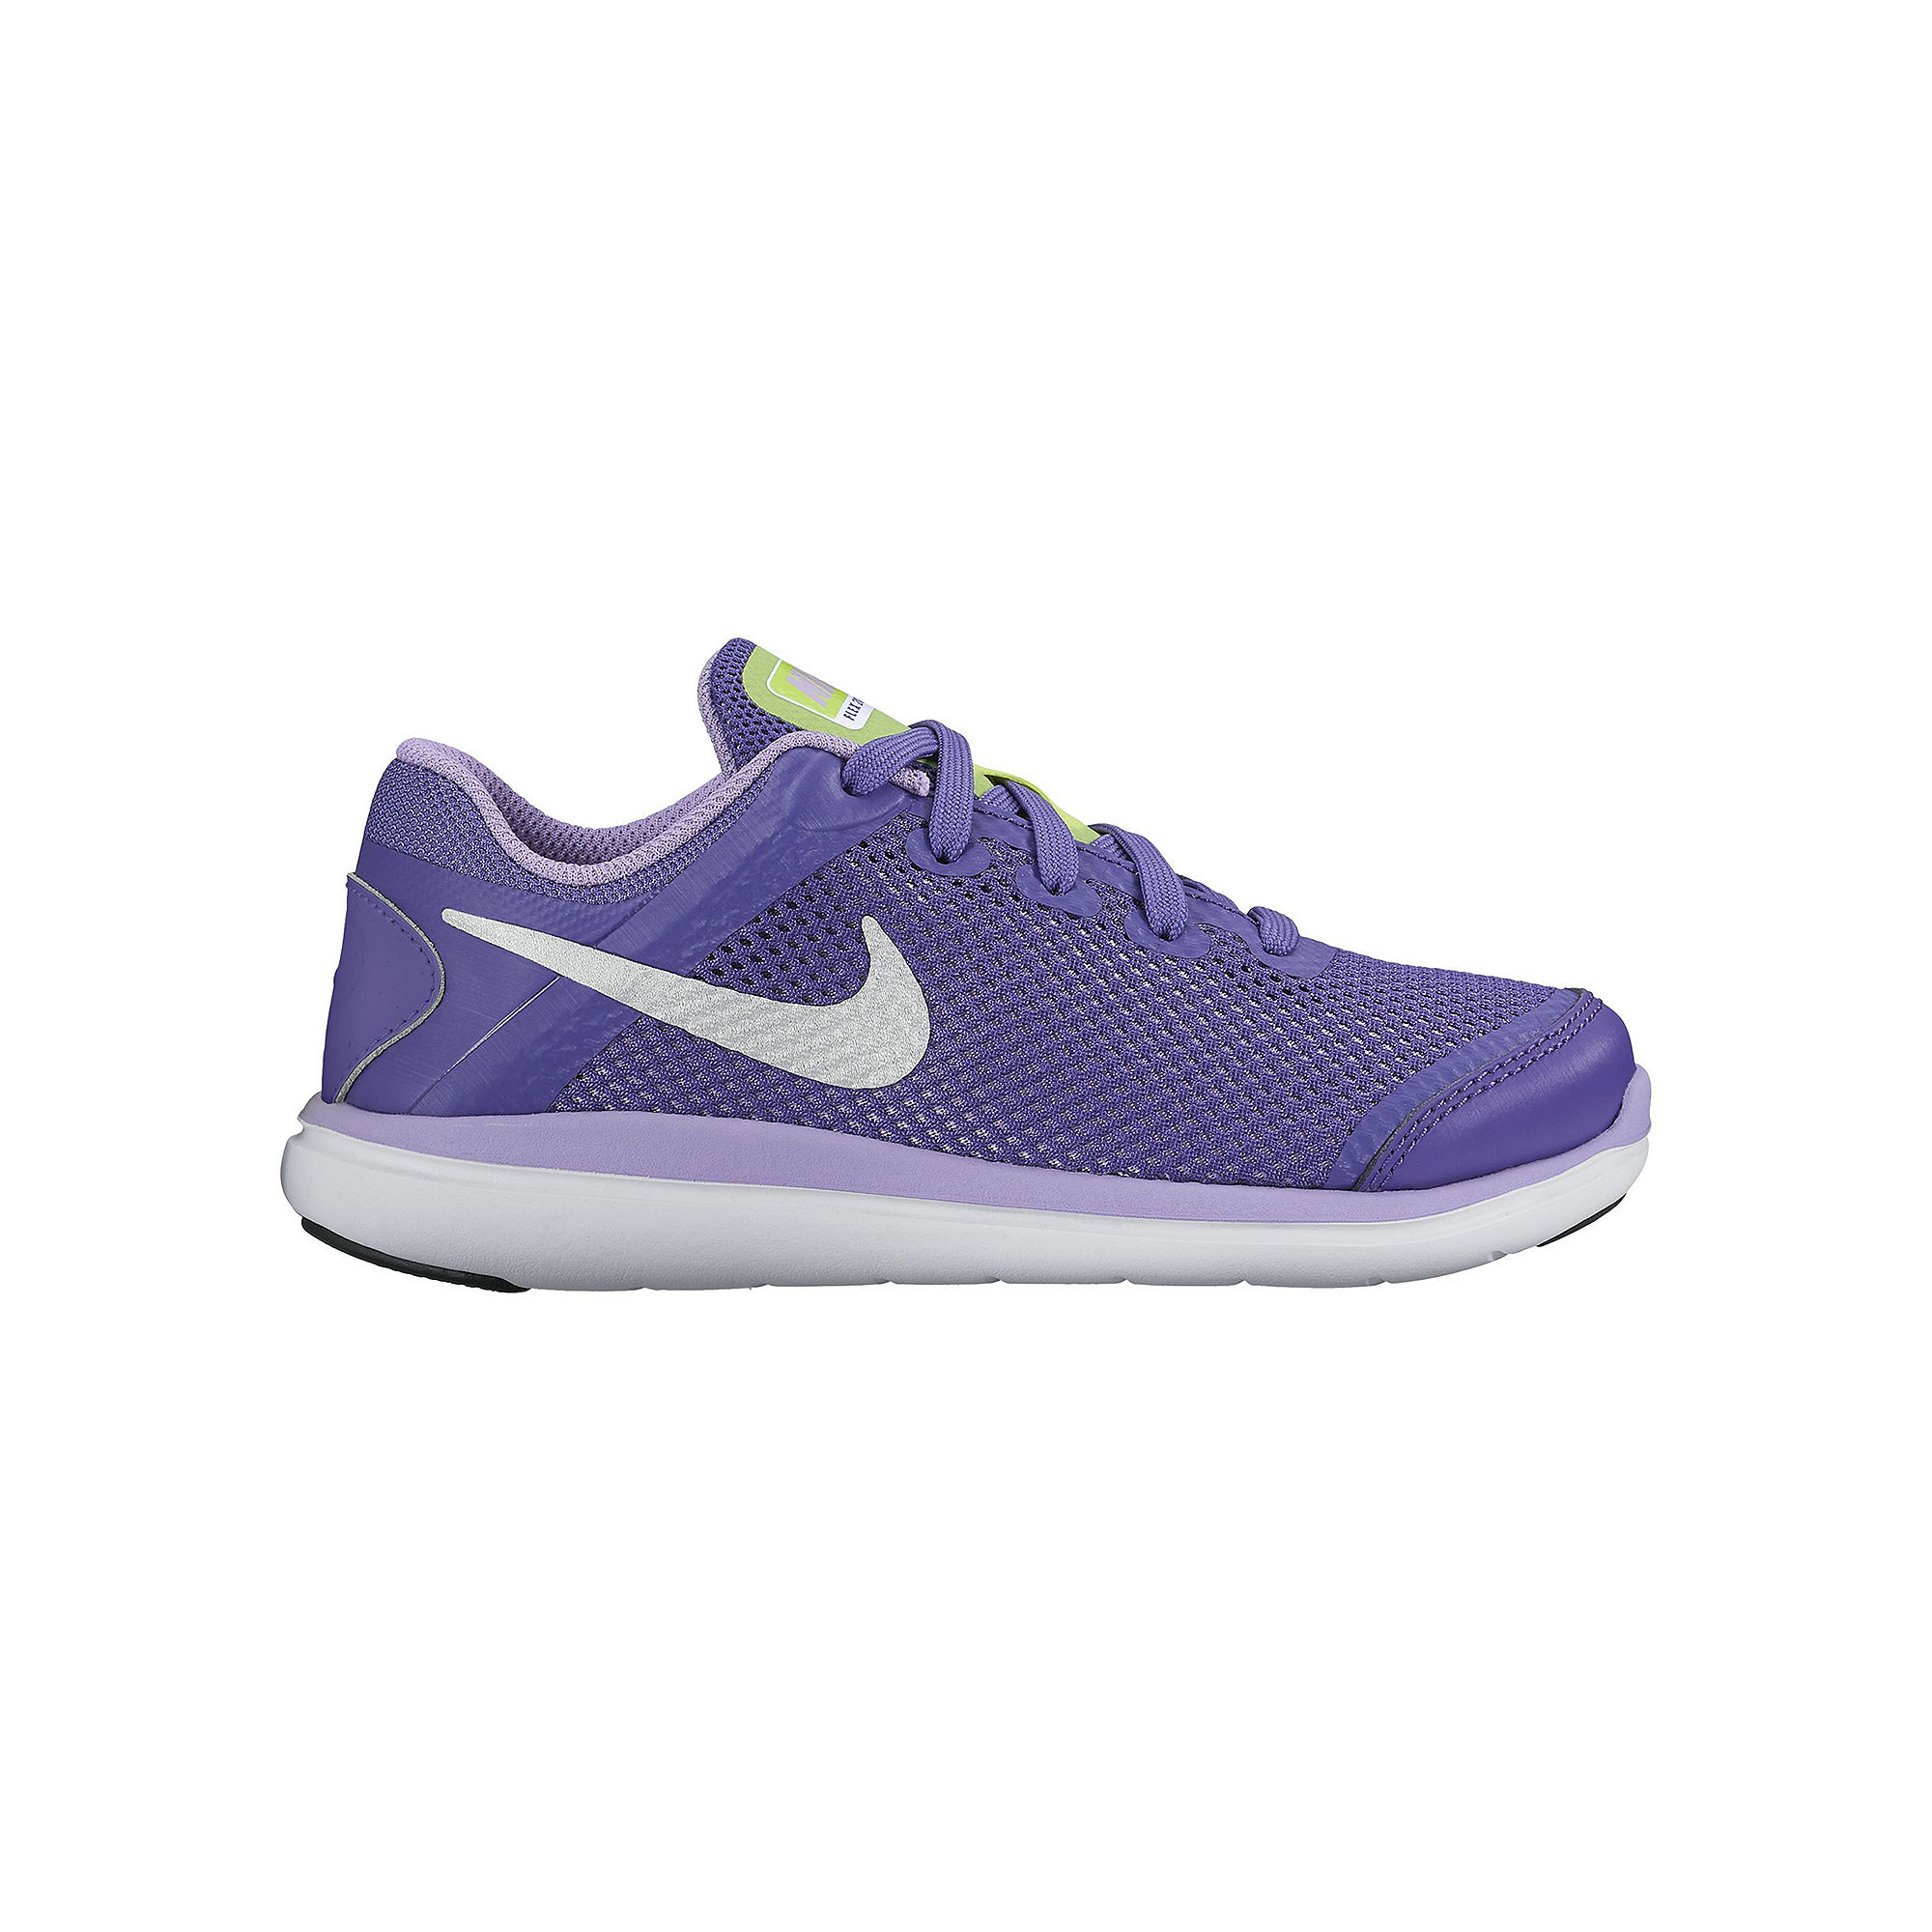 Nike Flex 2016 Run Girls Running Shoes - Little Kids